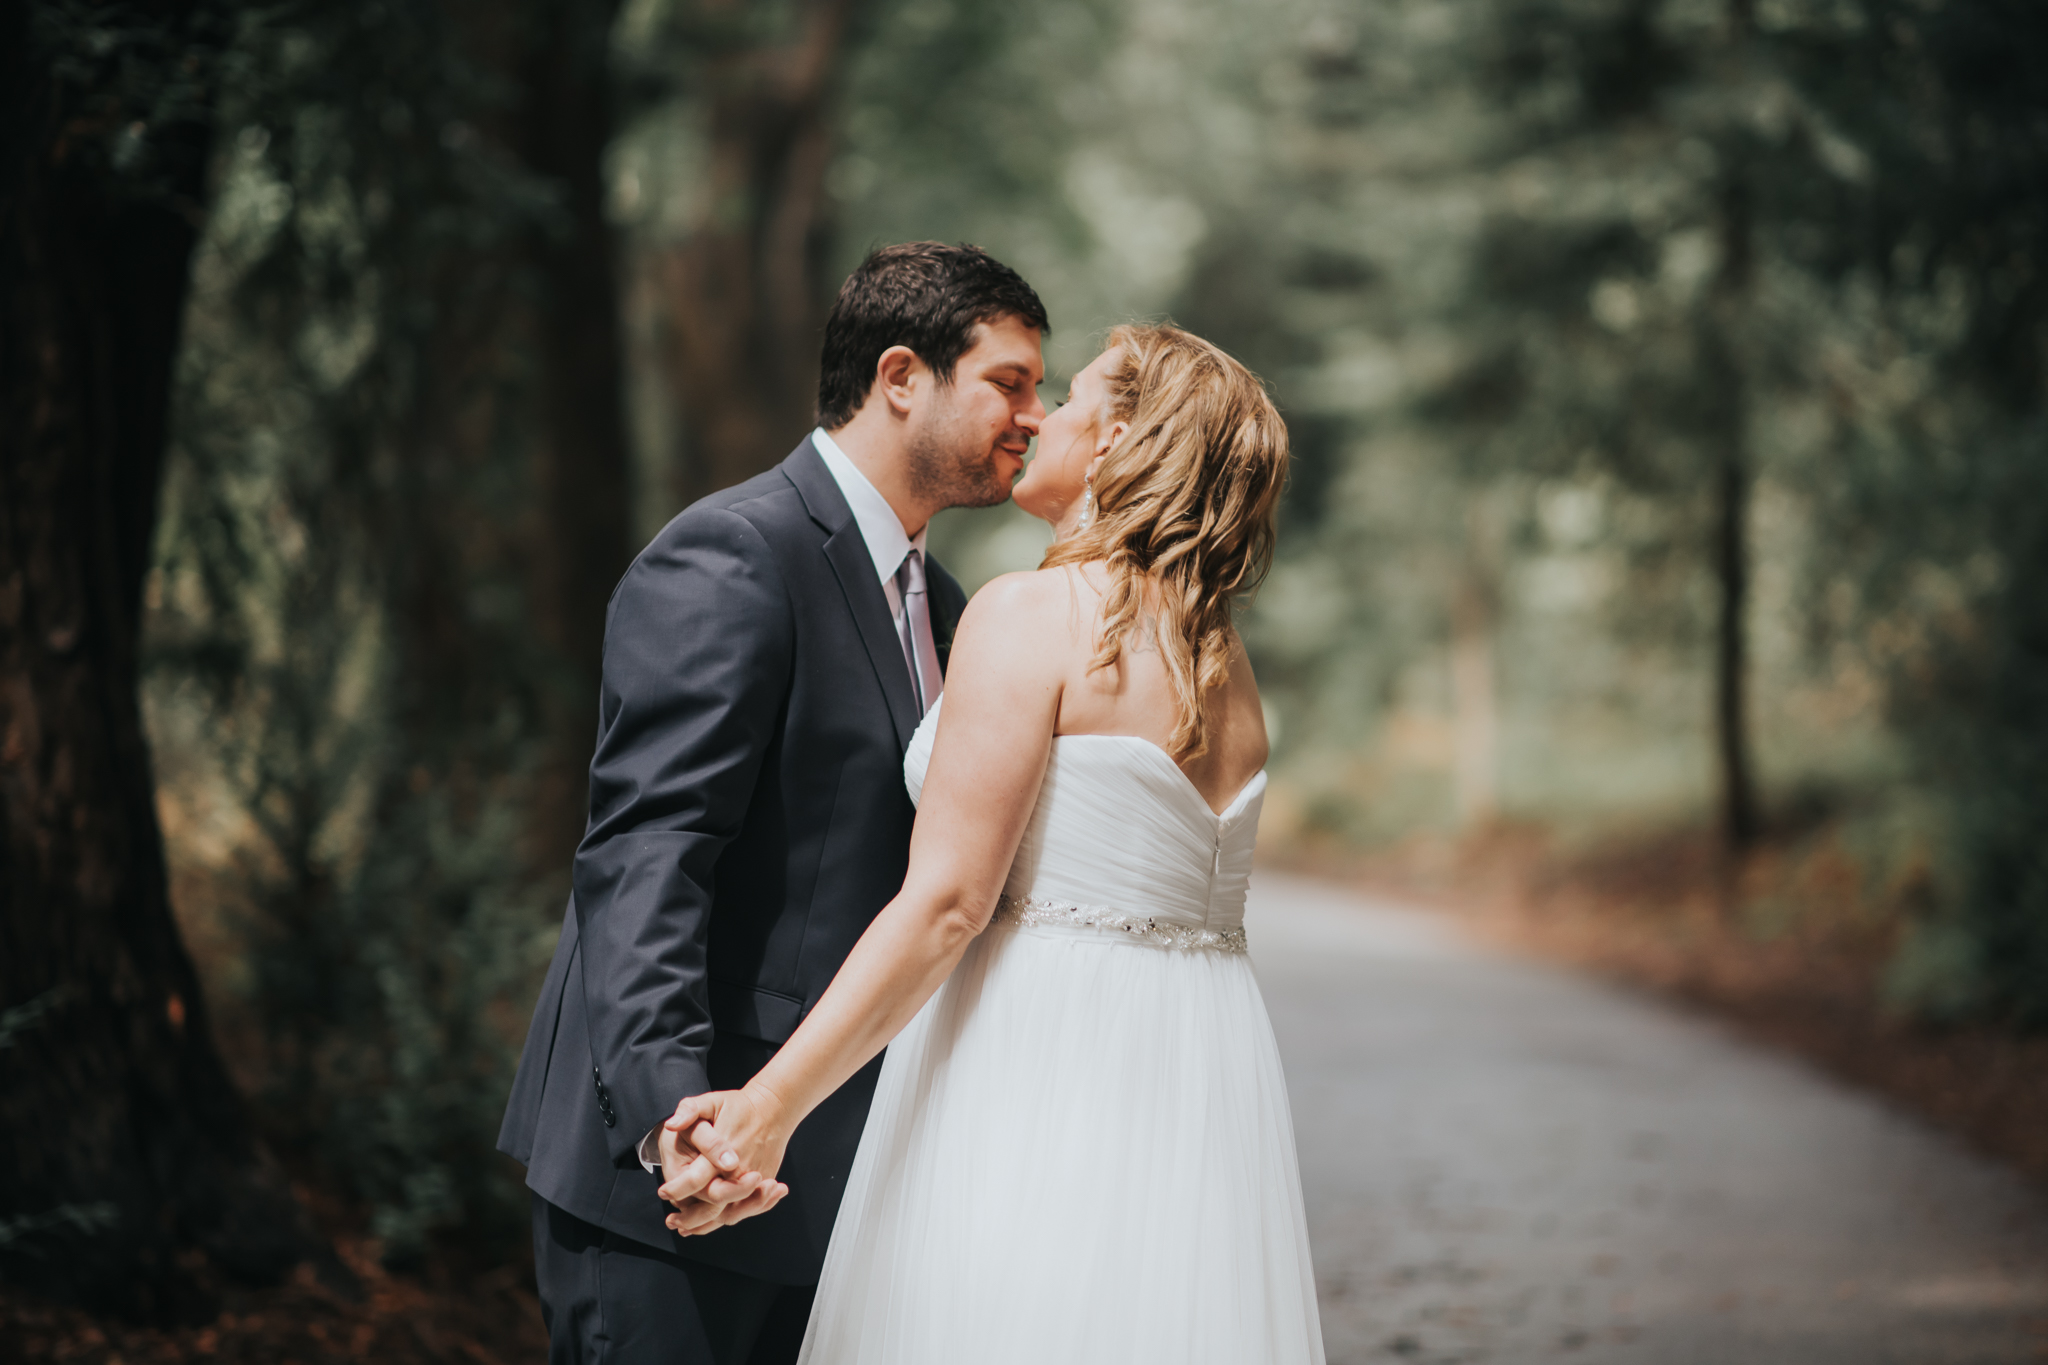 A LA CART - Per hour over scheduled time: $500Charcuterie board with local treats: $70Local farmers market bouquet: $100Champagne: $50Dogs included in sessions: $100Family sessions in Big Sur: $50 +